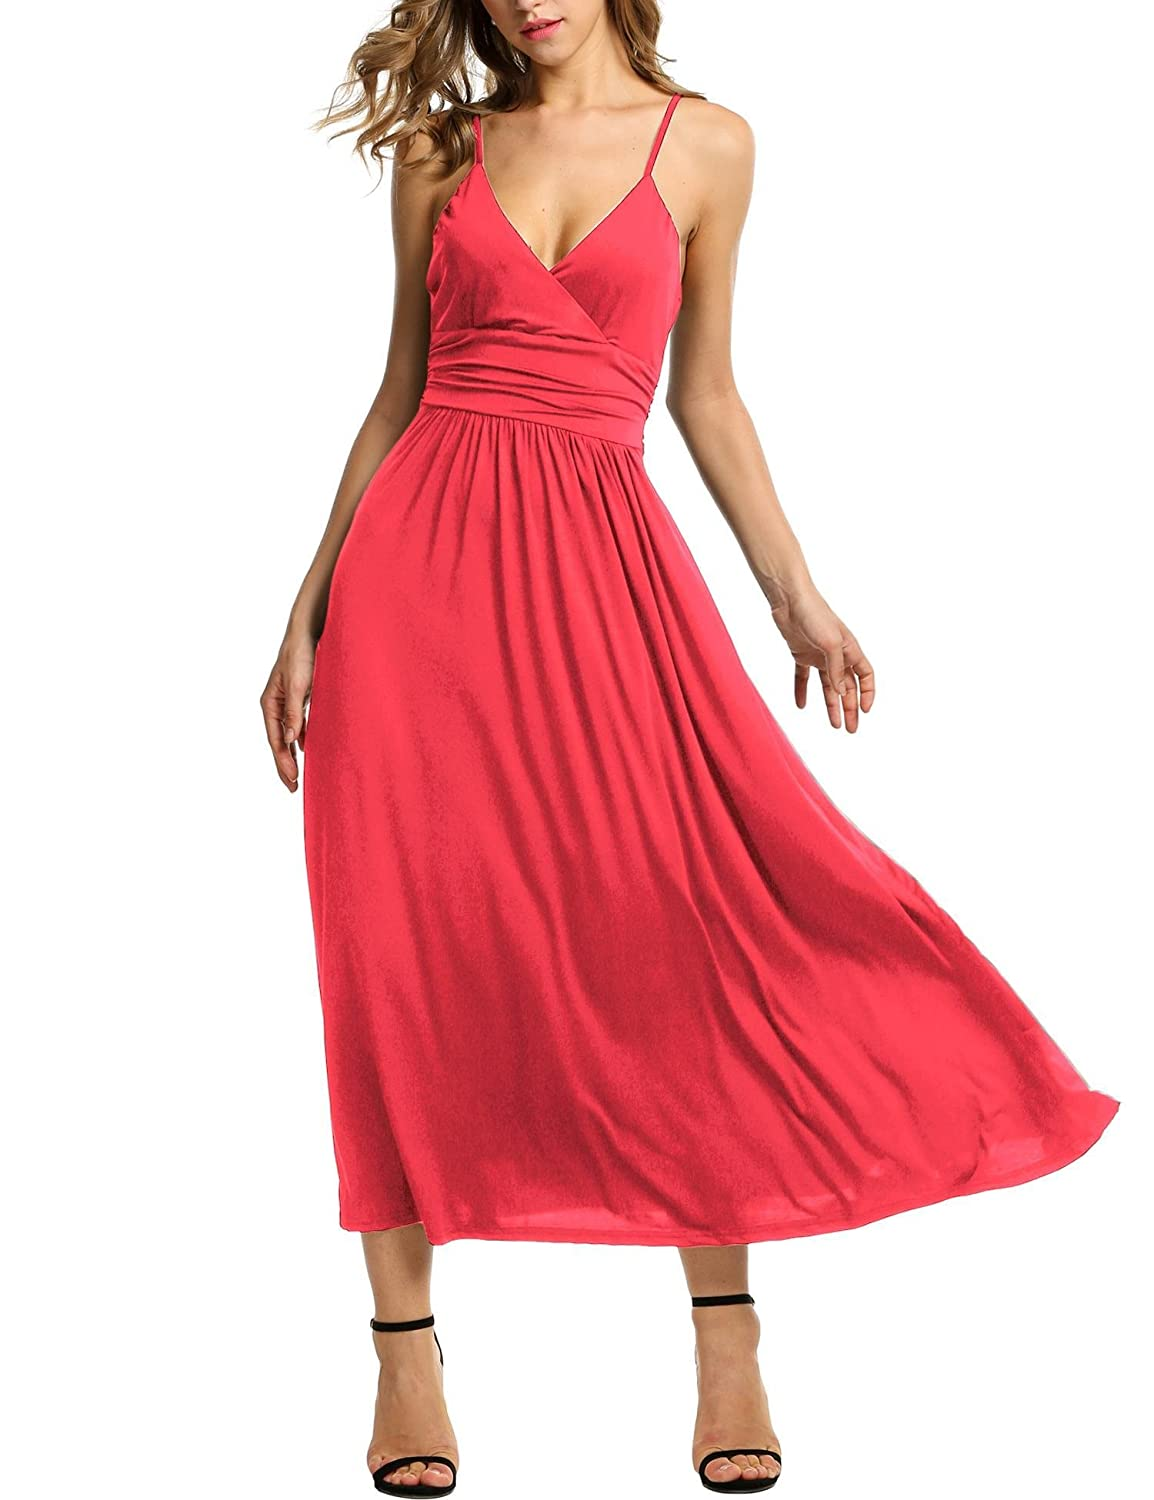 Top 10 wholesale Red Spaghetti Strap Long Dress - Chinabrands.com 92722b588